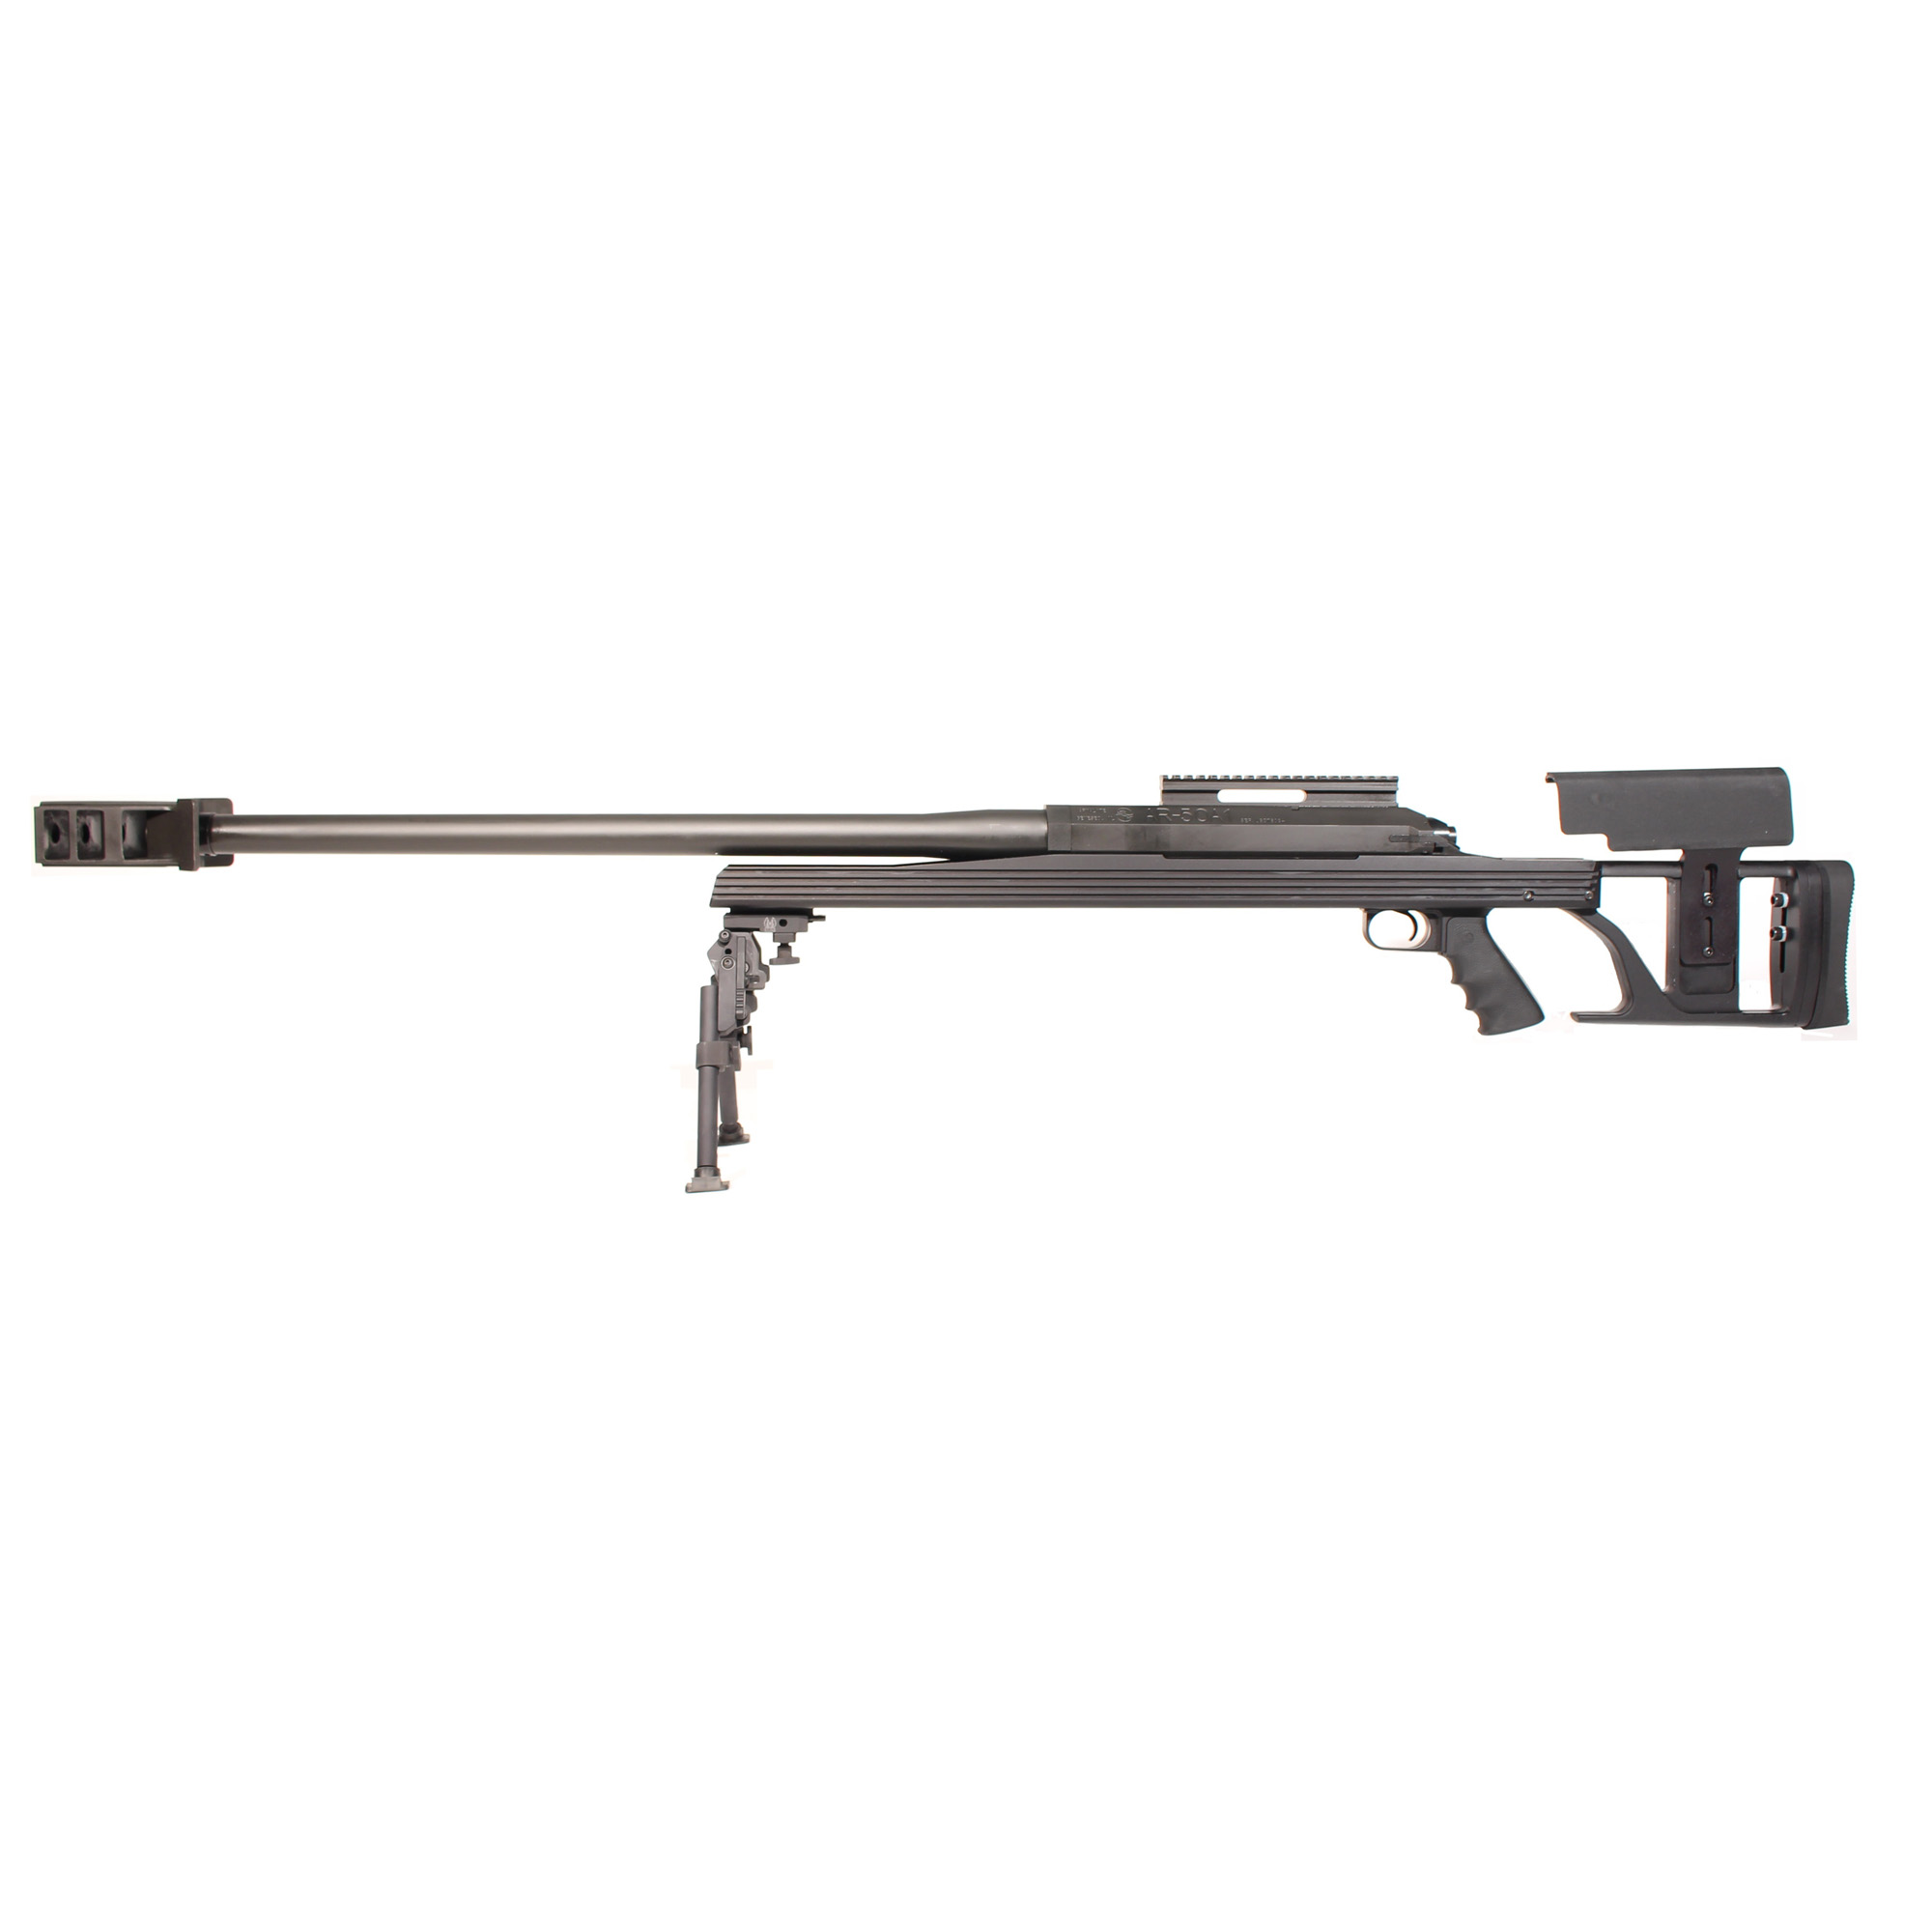 """This rifle is the newest incarnation of the wildly popular AR-50 chambered for the powerful .50BMG cartridge - a single-shot"""" bolt-action rifle featuring a unique octagonal receiver bedded down into a V-shaped stock. Designed to be an economical answer for the challenges of long range shooting"""" the AR-50A1 is amazingly accurate and with its massive muzzle brake"""" it has a very manageable recoil."""